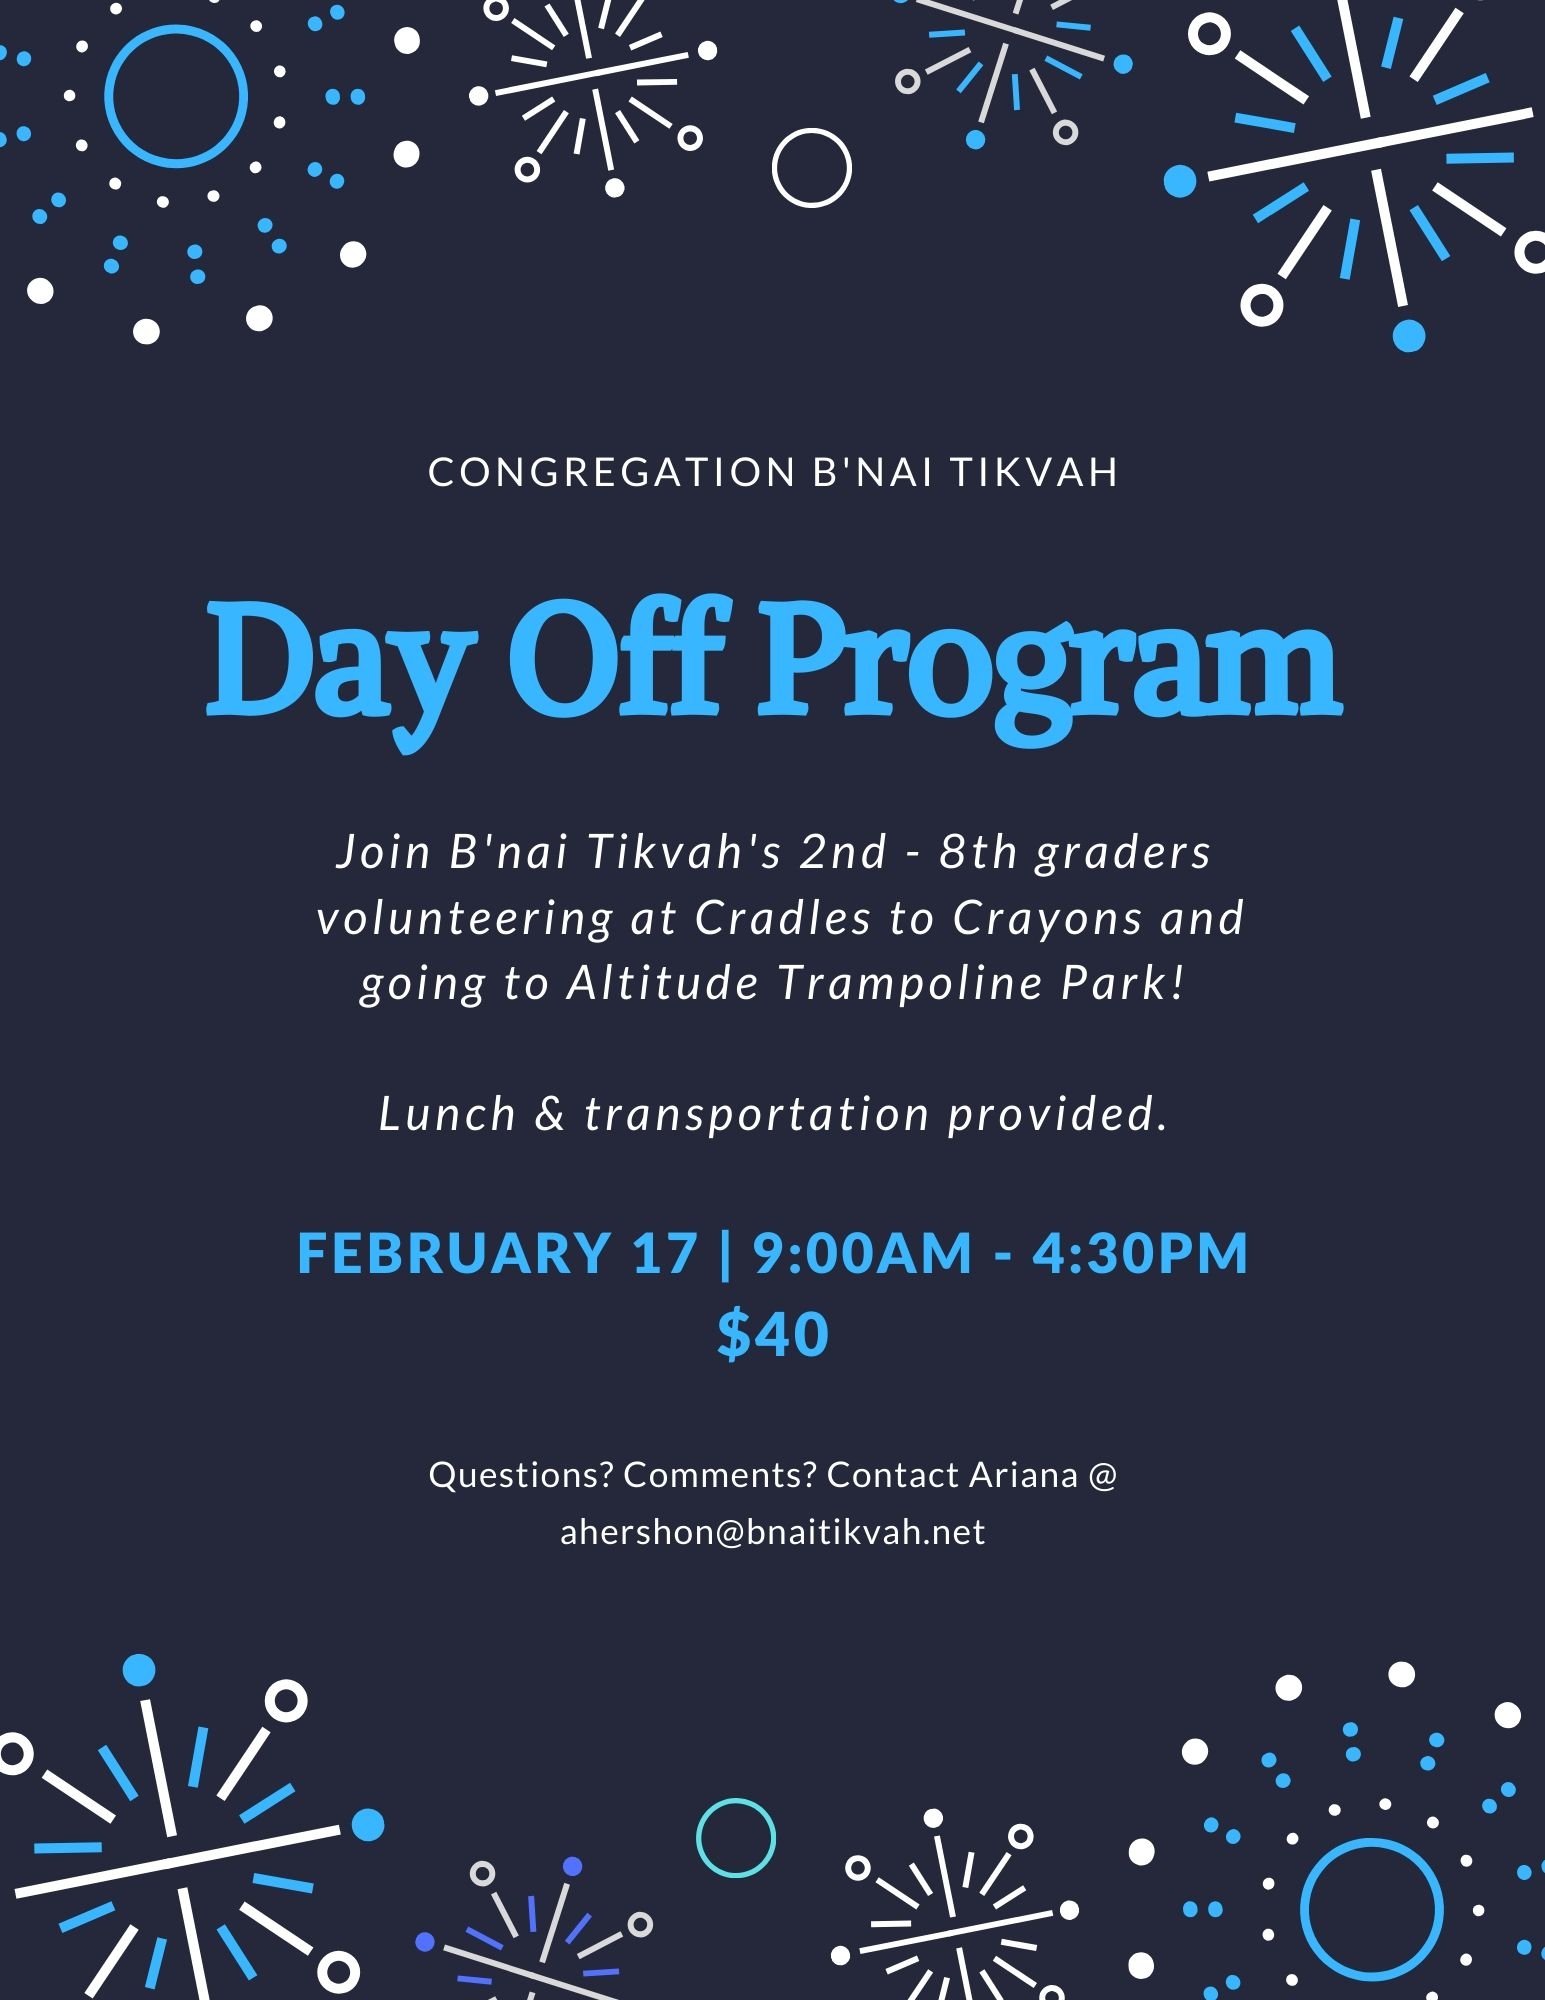 President's Day Off Program